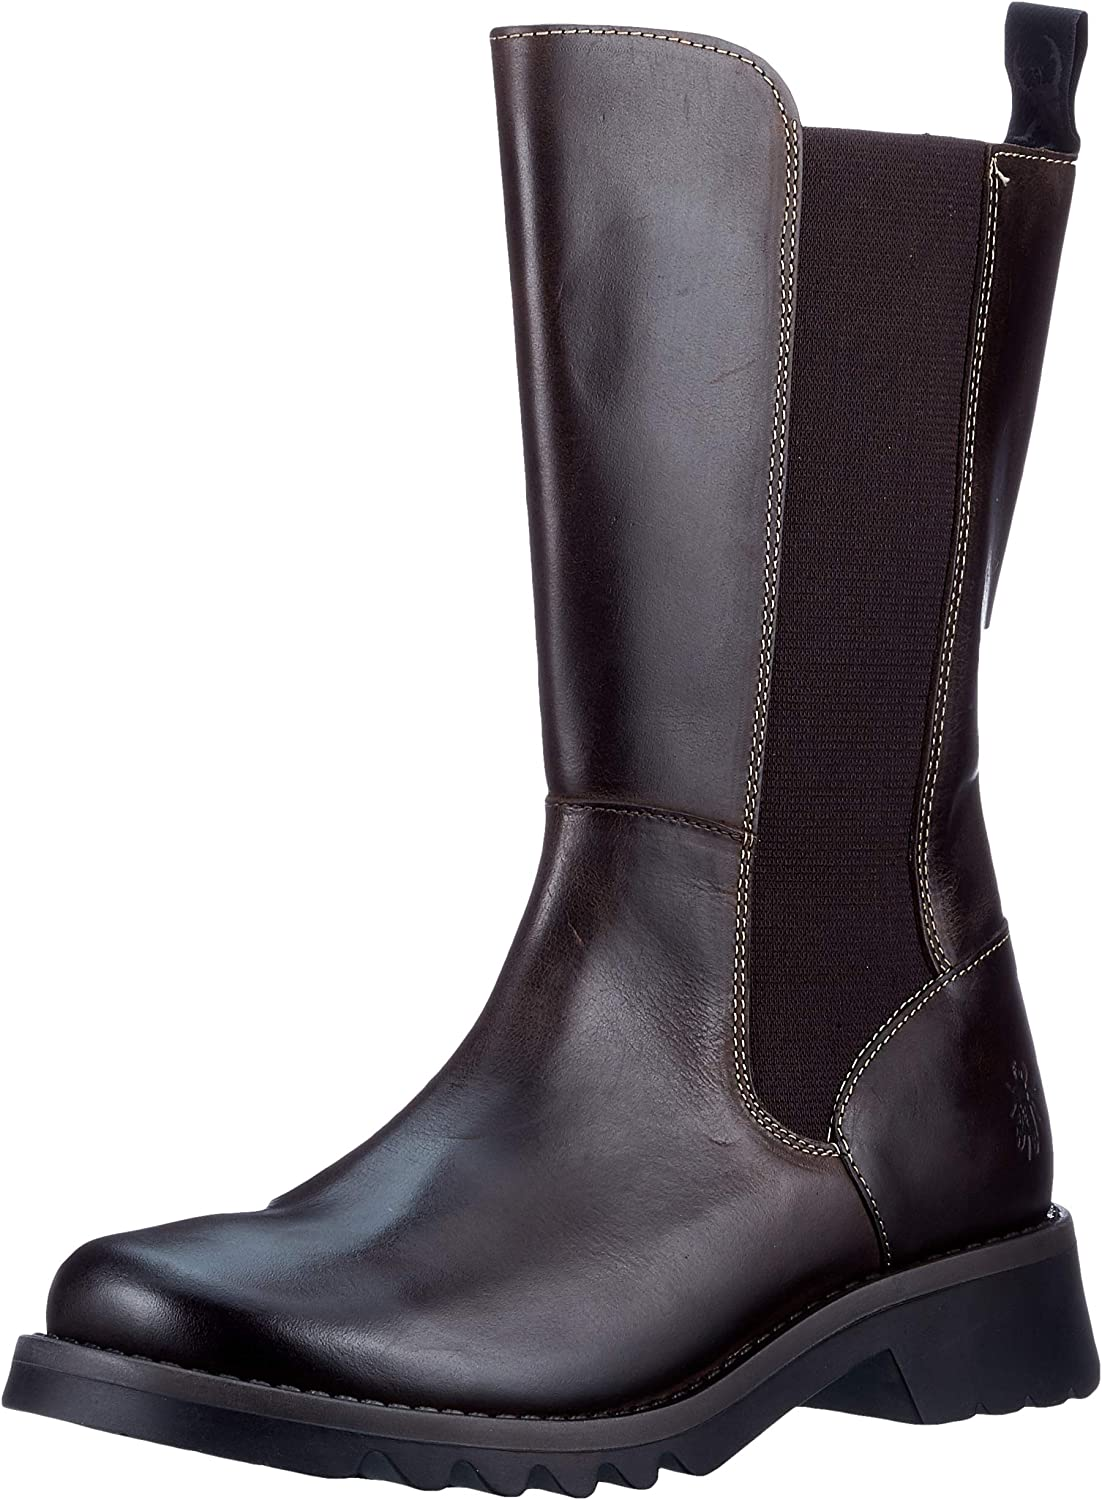 FLY LONDON Women's RELM641FLY Chelsea Boot 6 DK.Brown Baltimore Mall Atlanta Mall